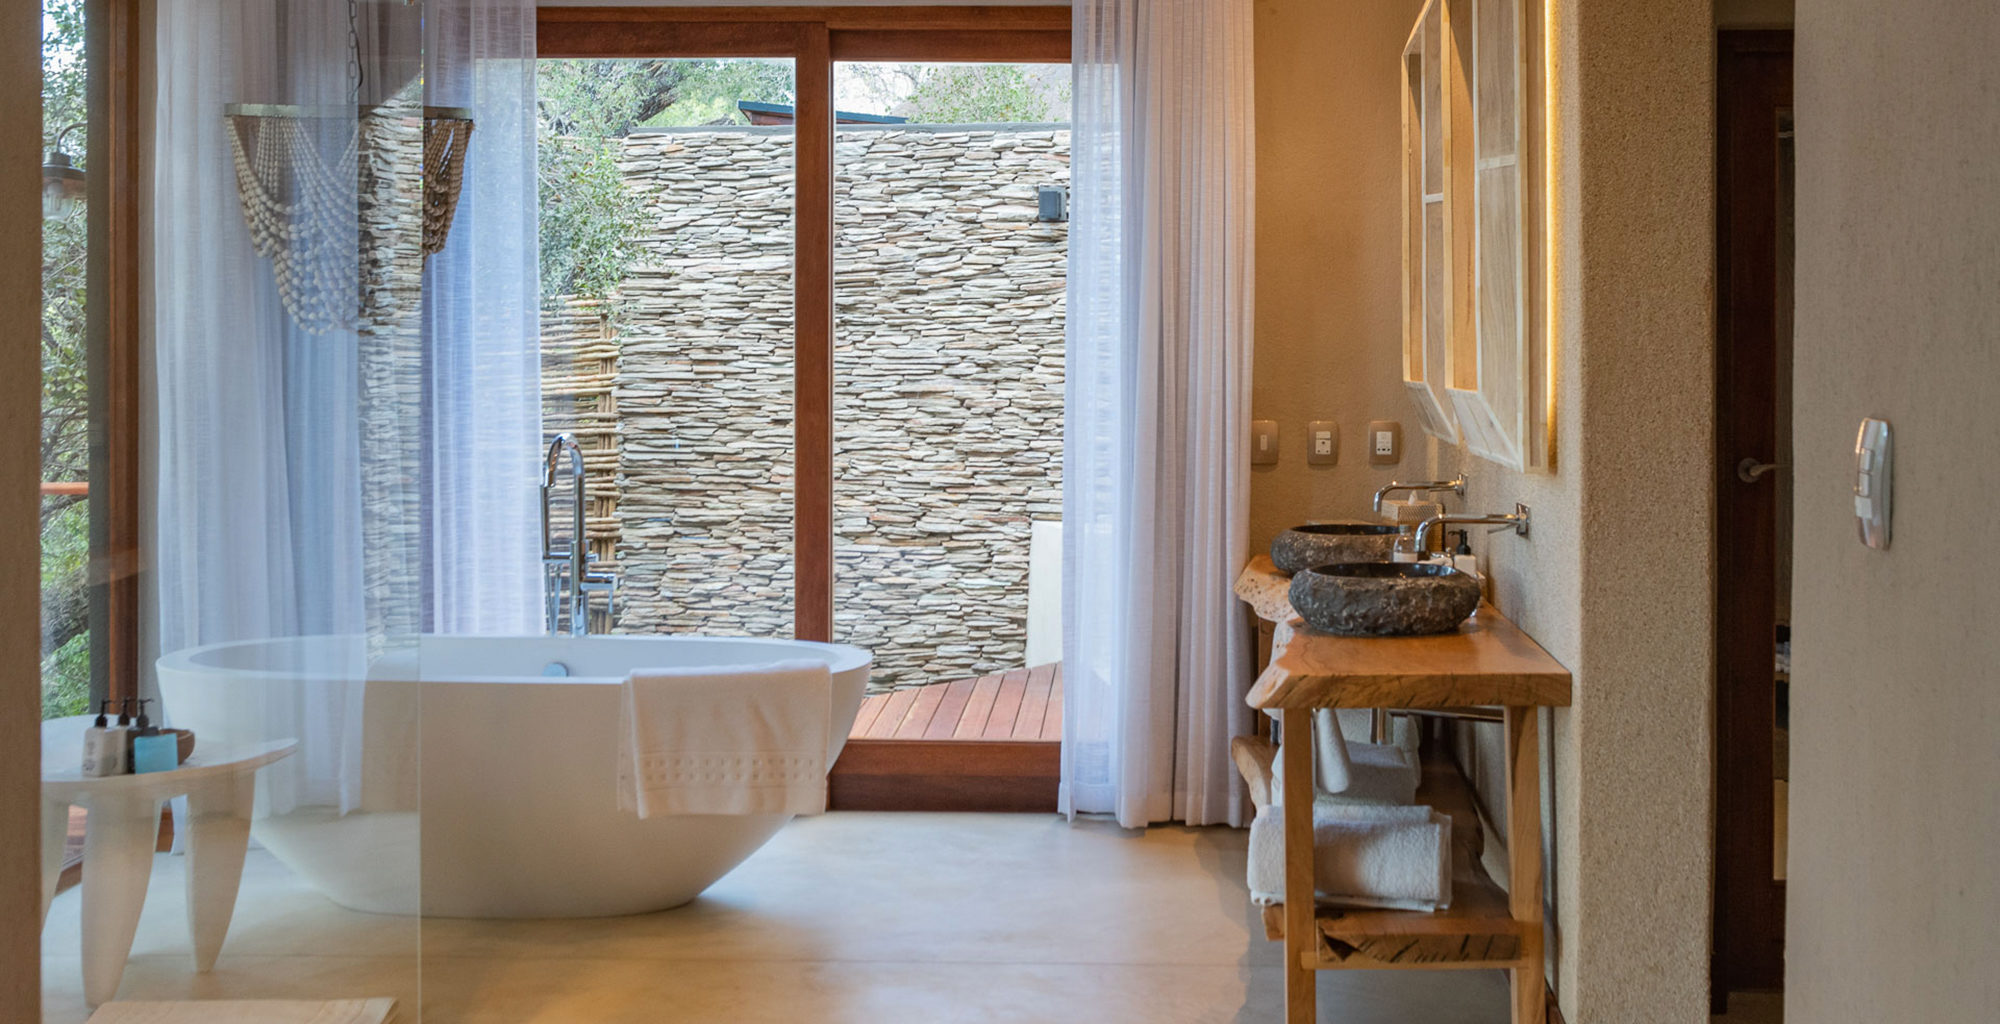 South-Africa-Dulini-River-Lodge-Bathroom